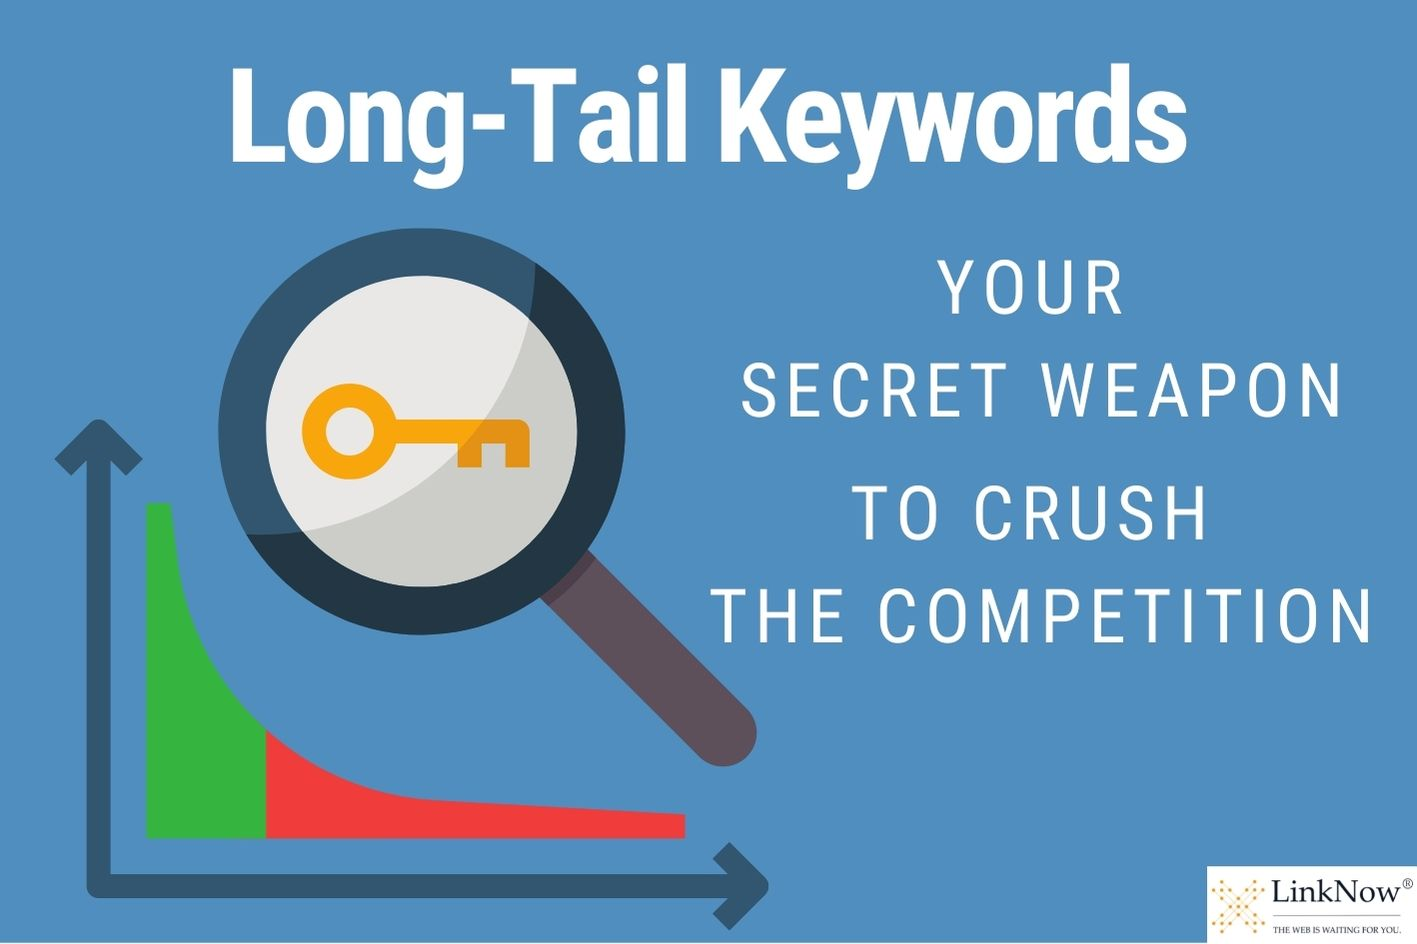 Image of a graph and a magnifying glass focused on a key. Text says: Long-tail keywords: Your secret weapon to crush the competition.